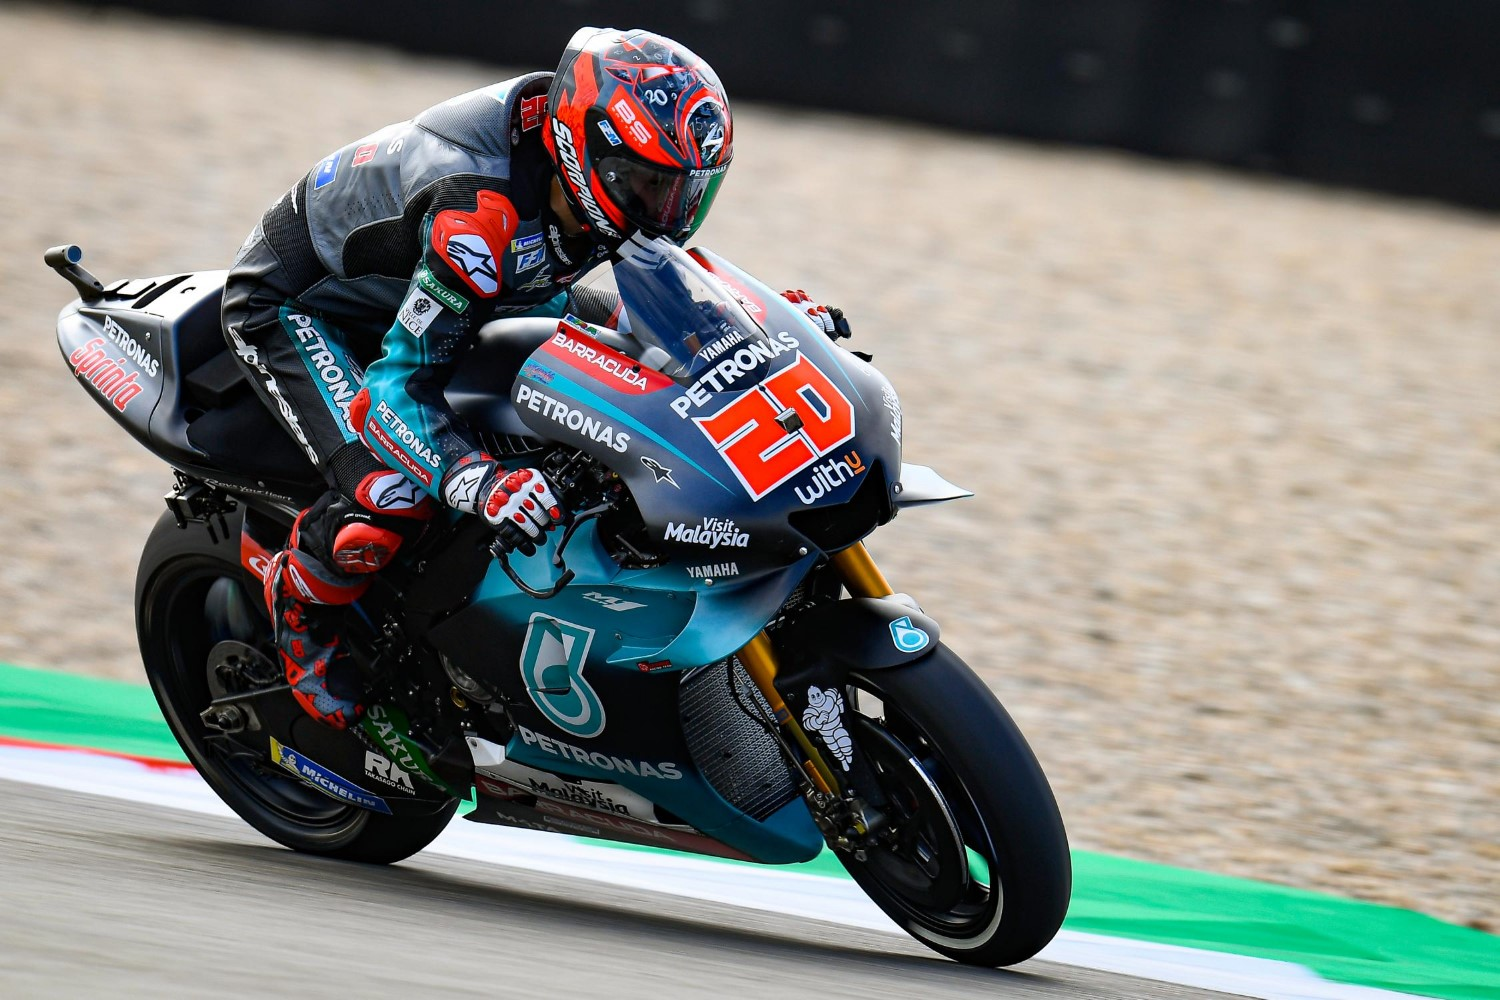 Fabio Quartararo on pole again!